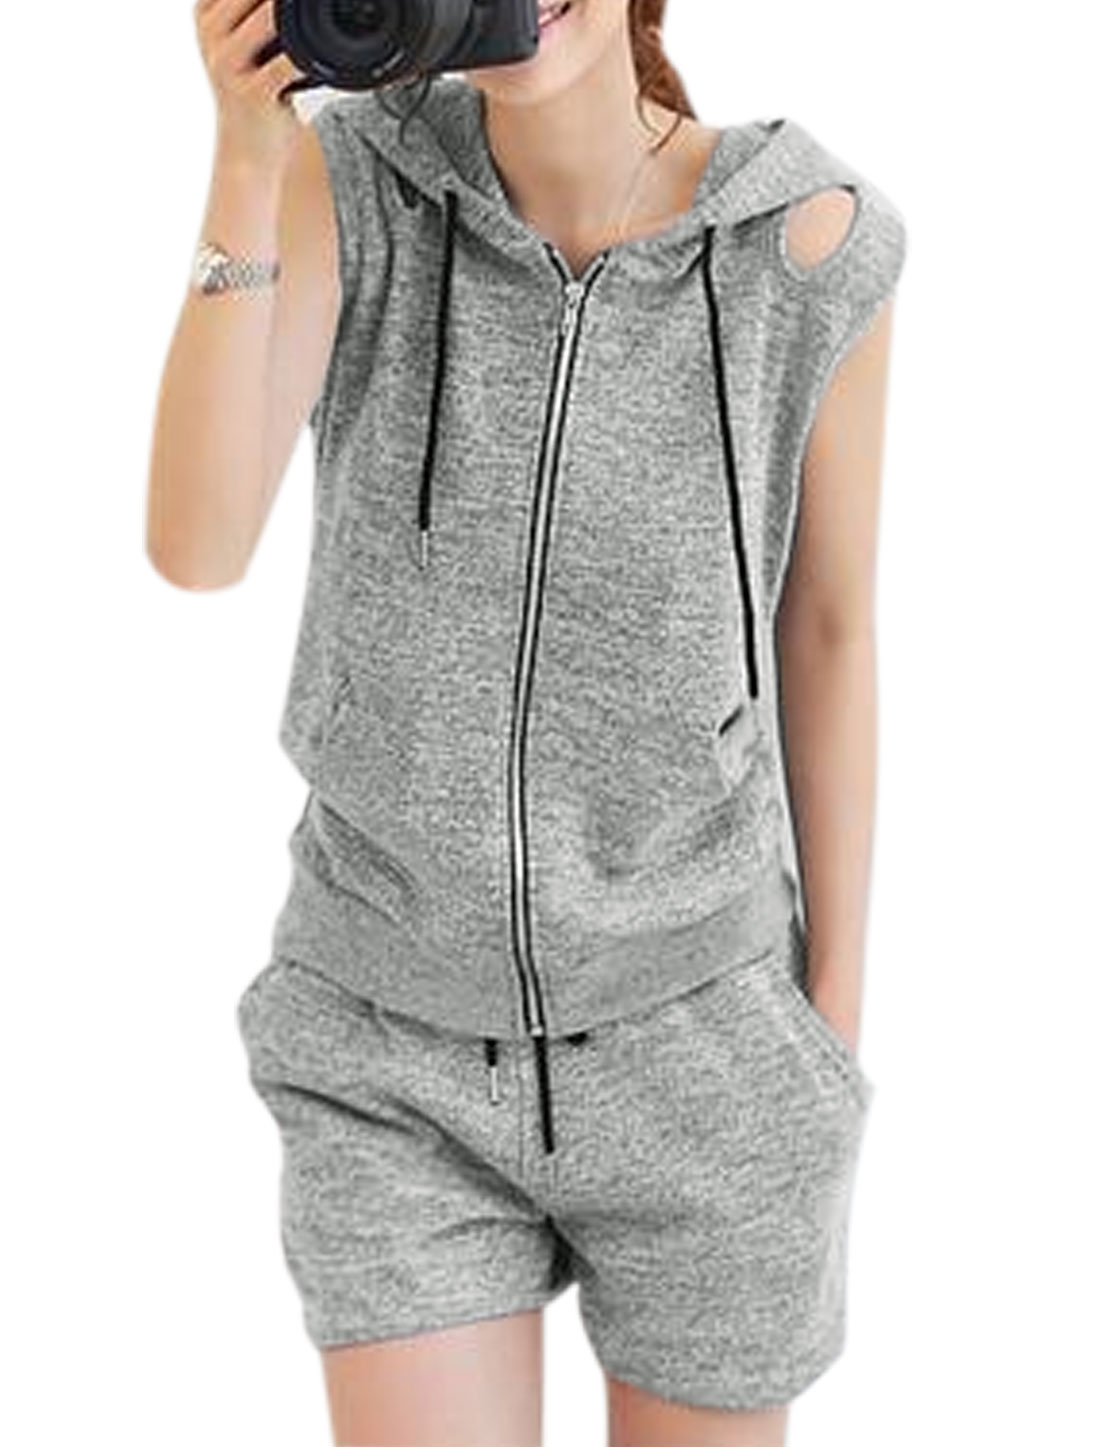 Lady Drawstring Hooded Cut Out Design Zip Up Top w Shorts Gray XS